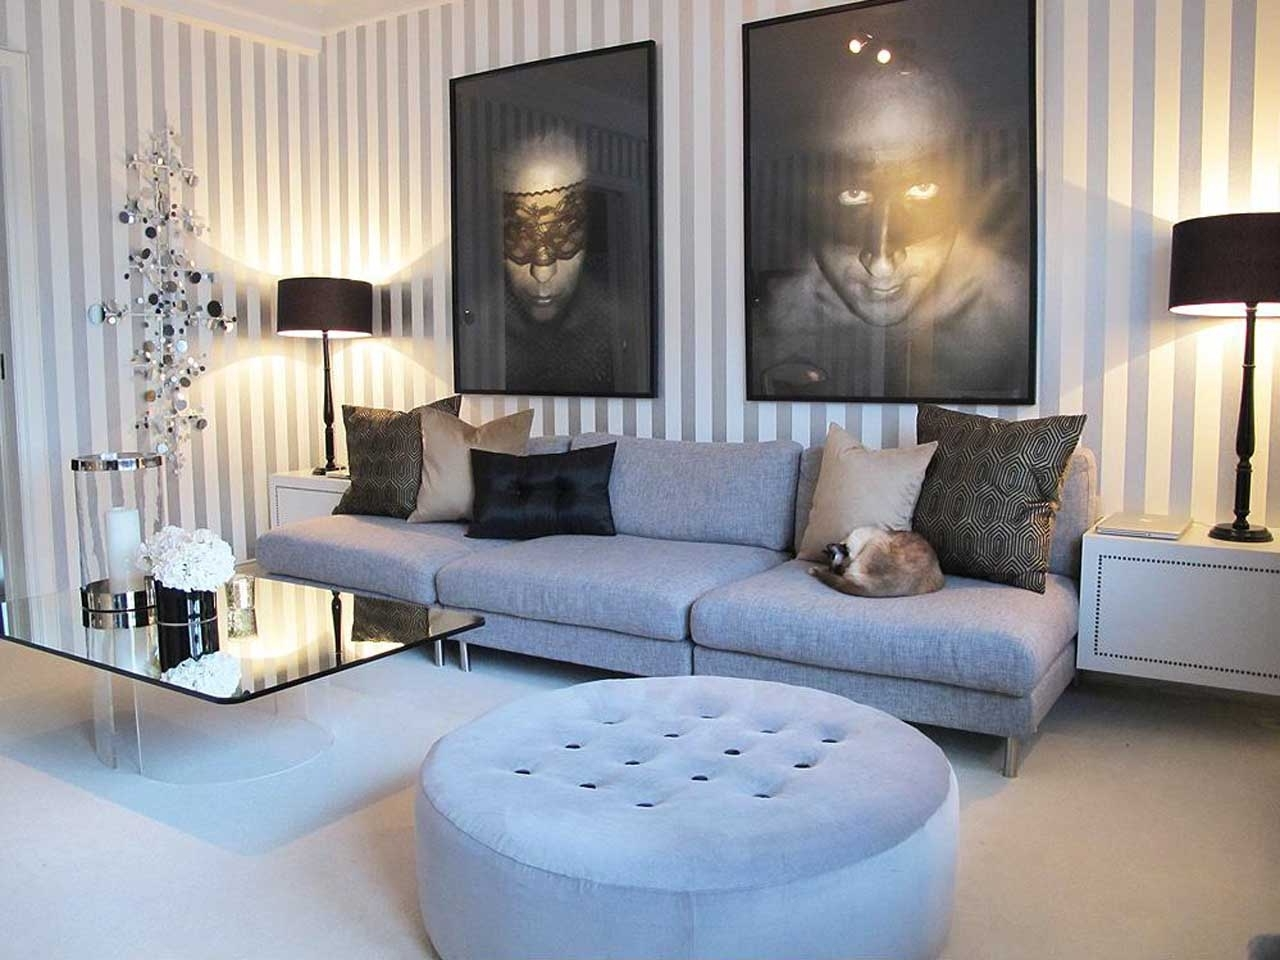 Funiture: Contemporary Living Room Furniture With Grey Sofa Made Of Throughout Best And Newest Living Room Coffee Table Lamps (View 9 of 20)